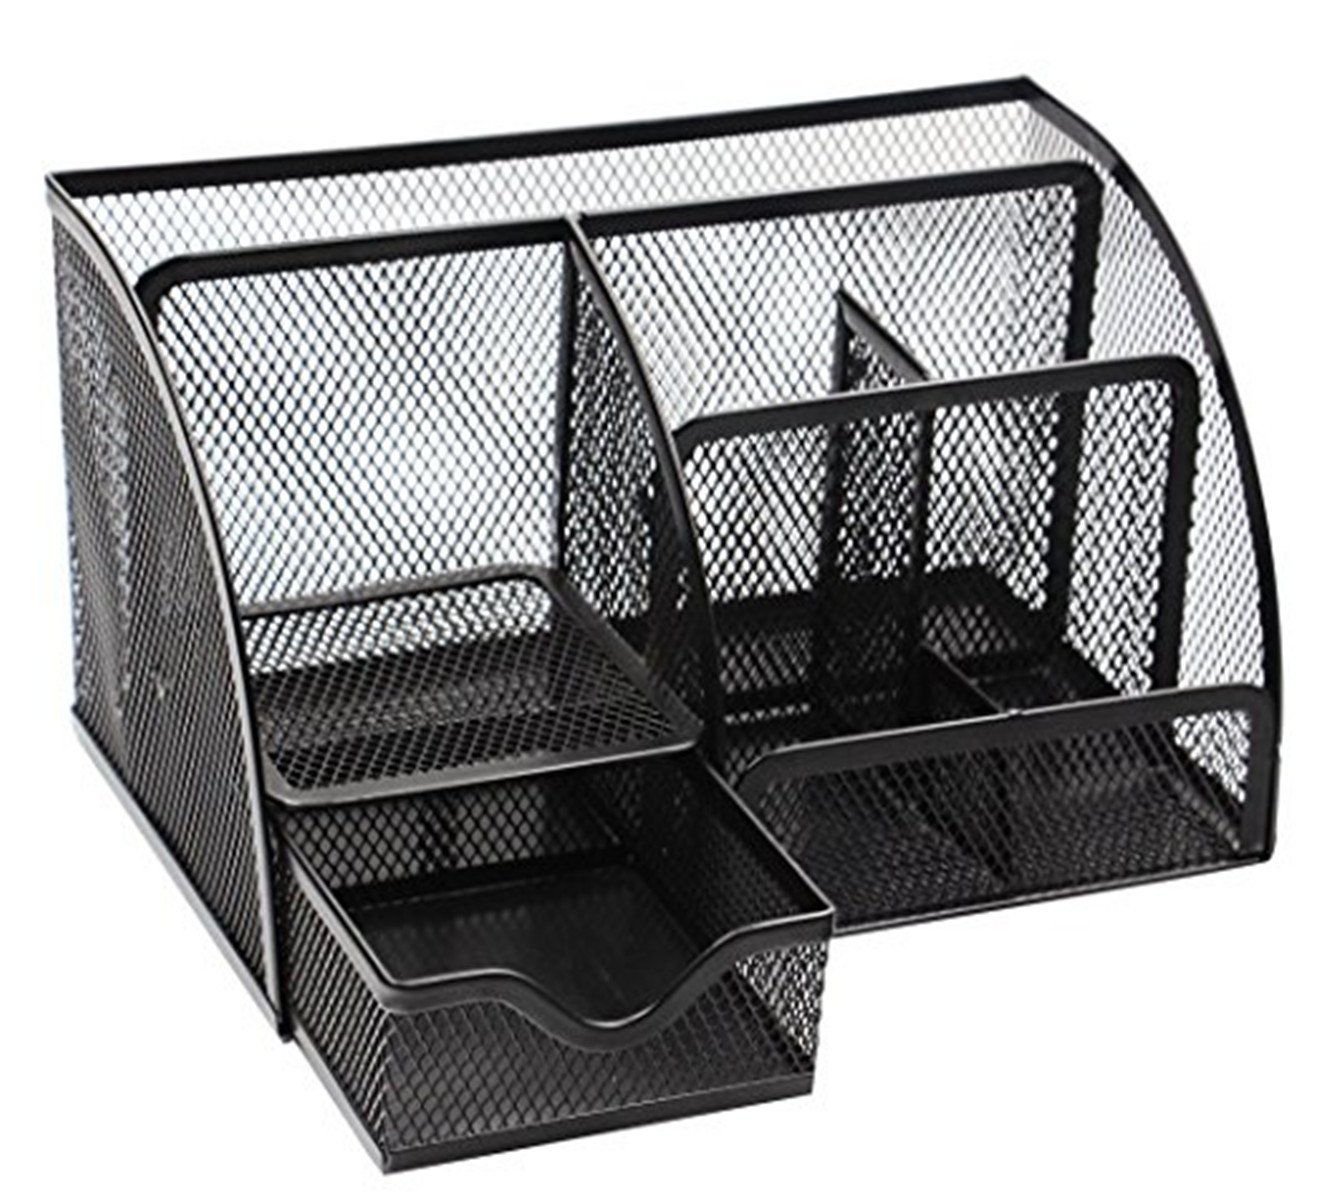 Space Saving Desk Tidy Multi-functional Metal Wire Mesh 5 Compartments and 1 Slide Drawer Desktop Collection Office / School Supply Desktop Organizer Caddy W/ Drawer (Black)